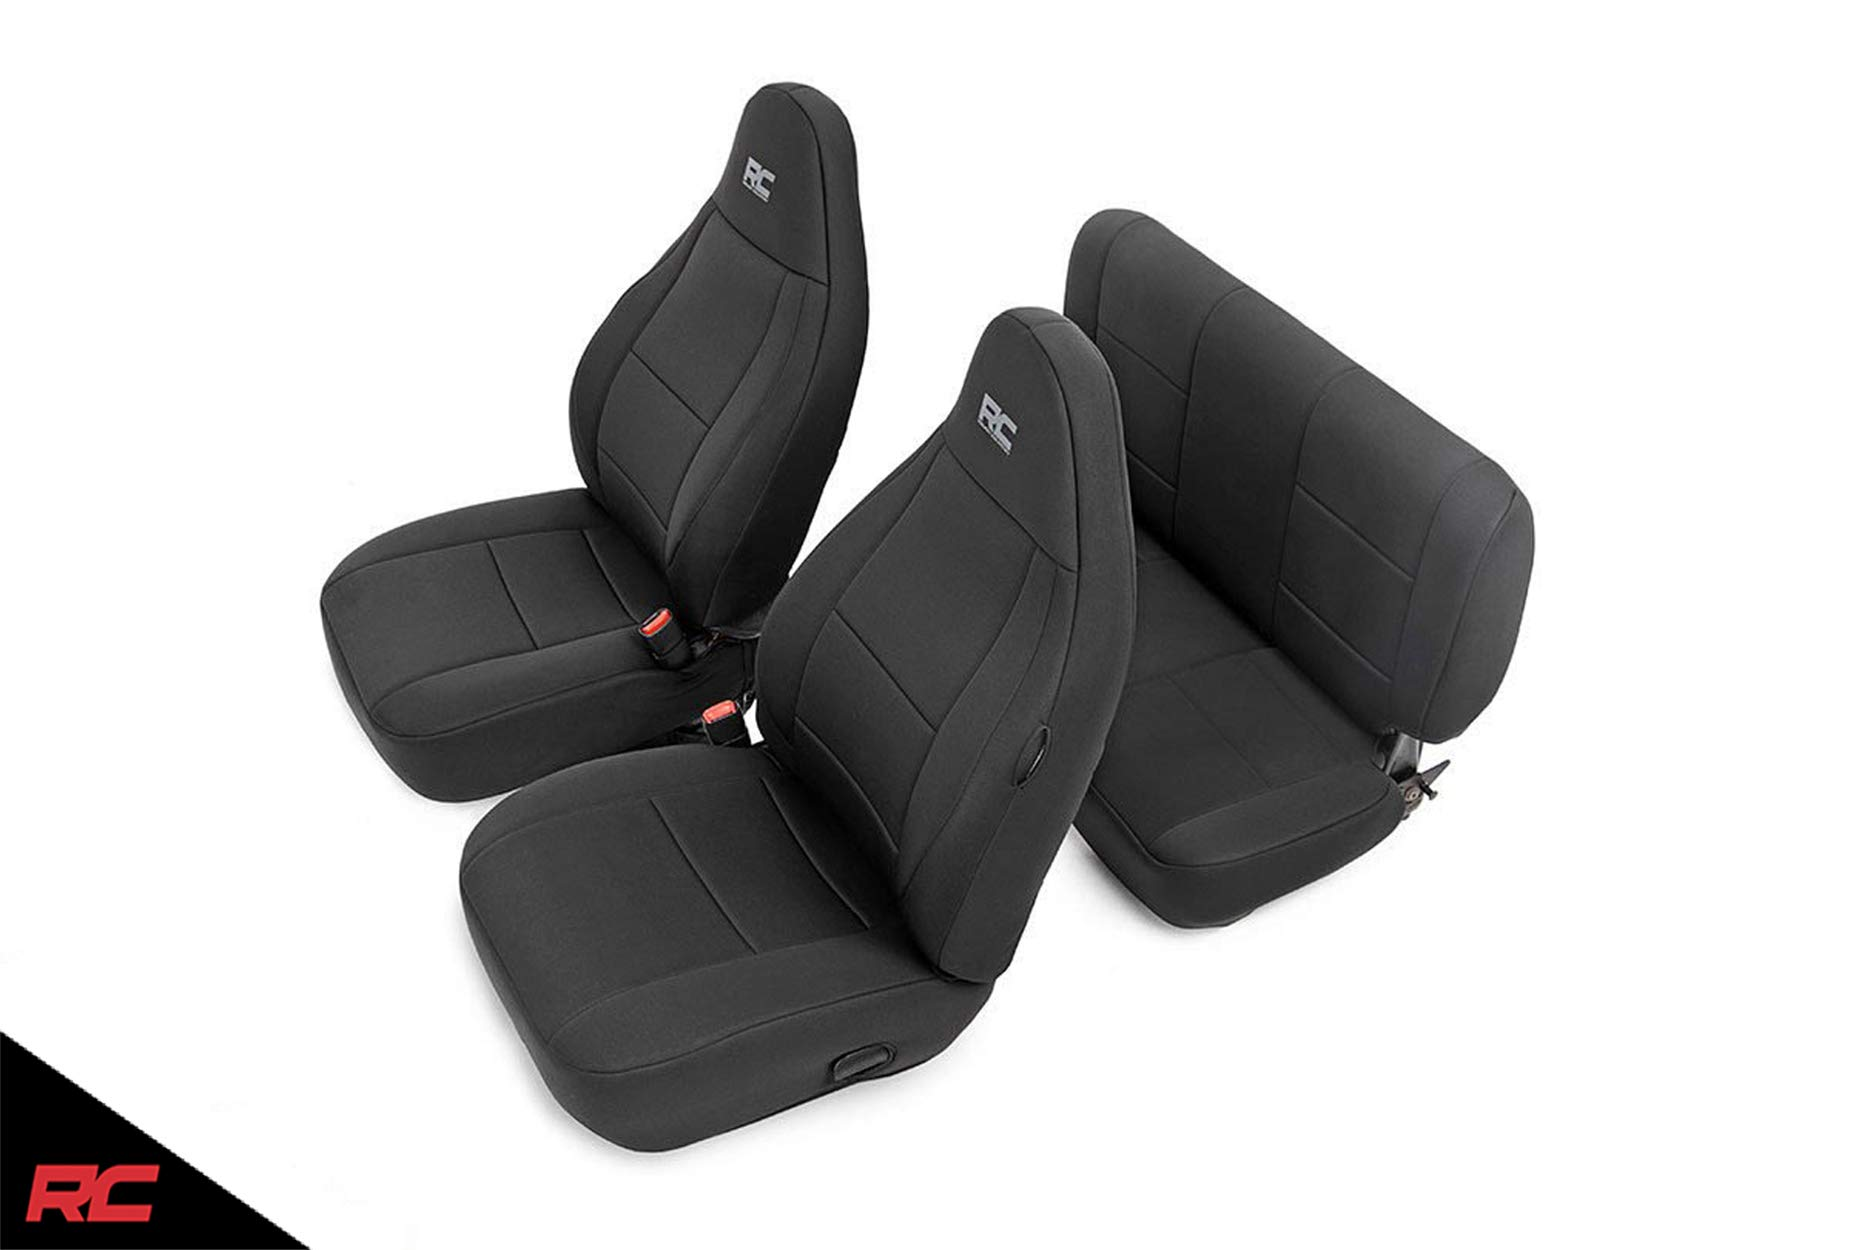 Rough Country 91000 Neoprene Seat Covers Black Compatible w/ 1997-2002 Jeep Wrangler TJ (Set) Custom Fit Water Resistant by Rough Country